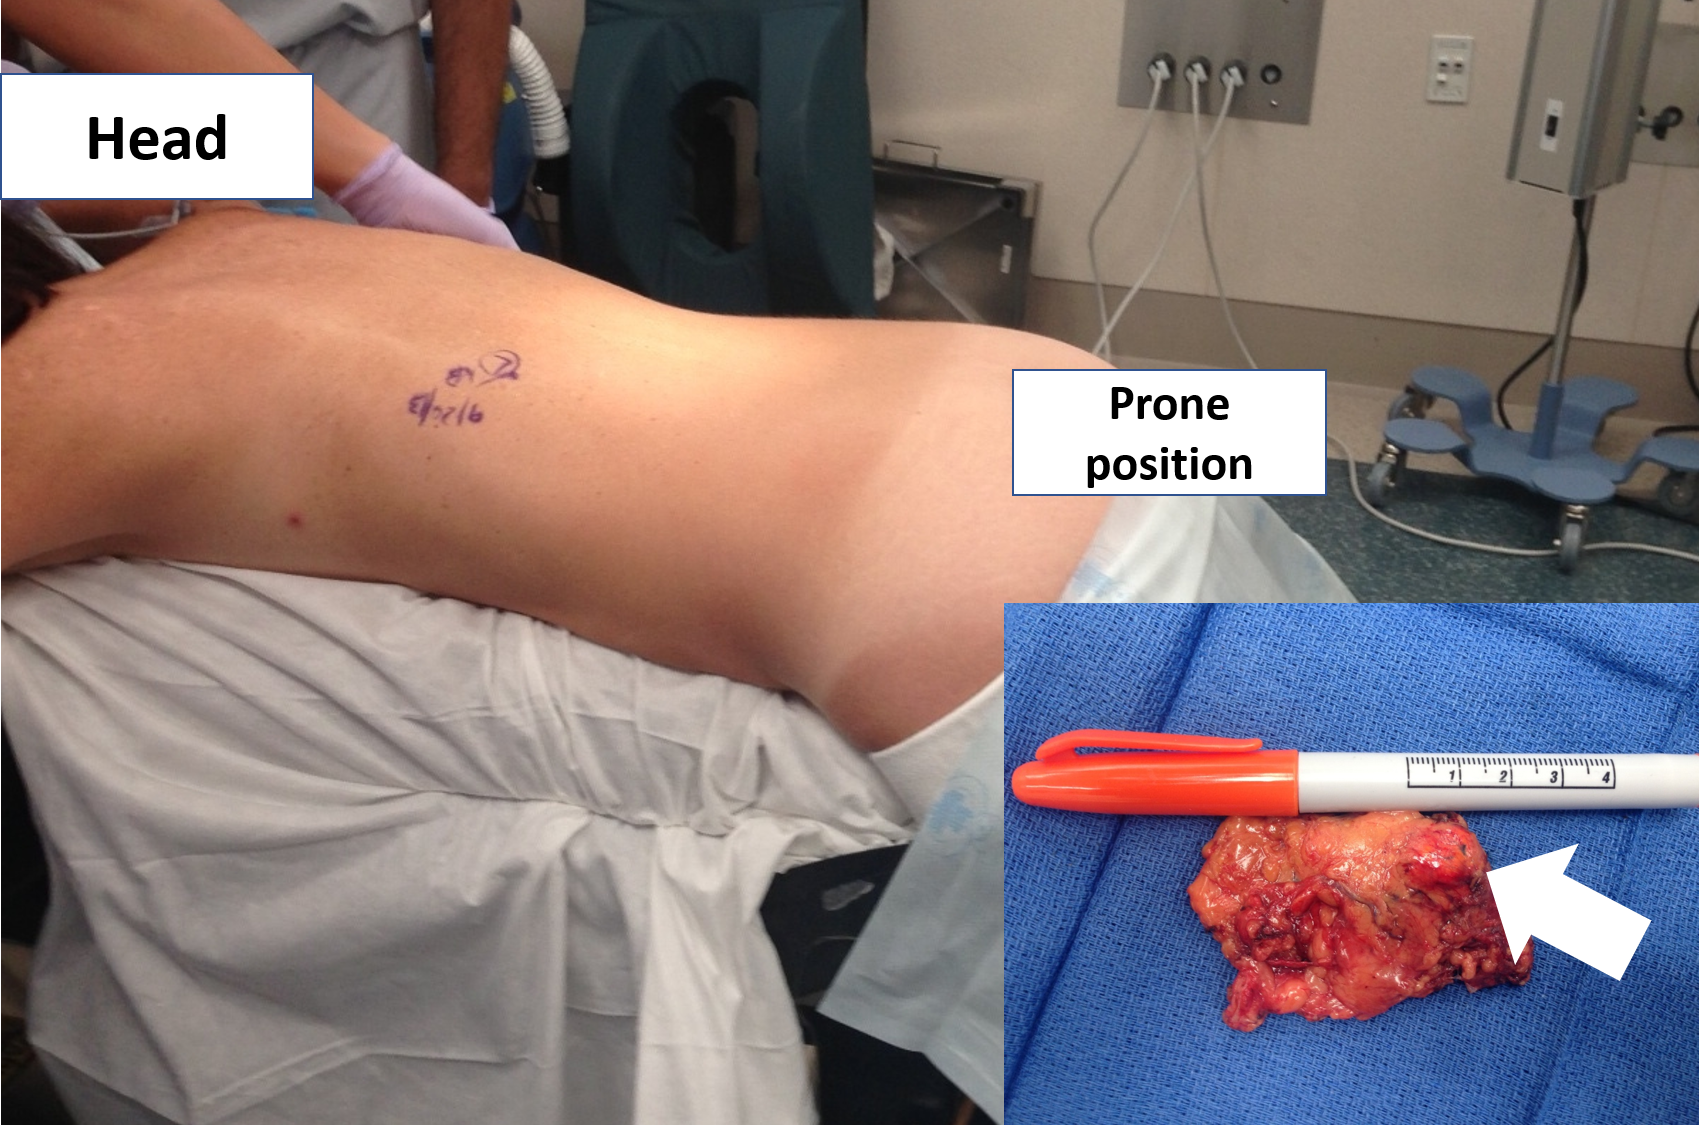 The correct prone position of a patient undergoing a left Mini Back Scope Adrenalectomy (MBSA).